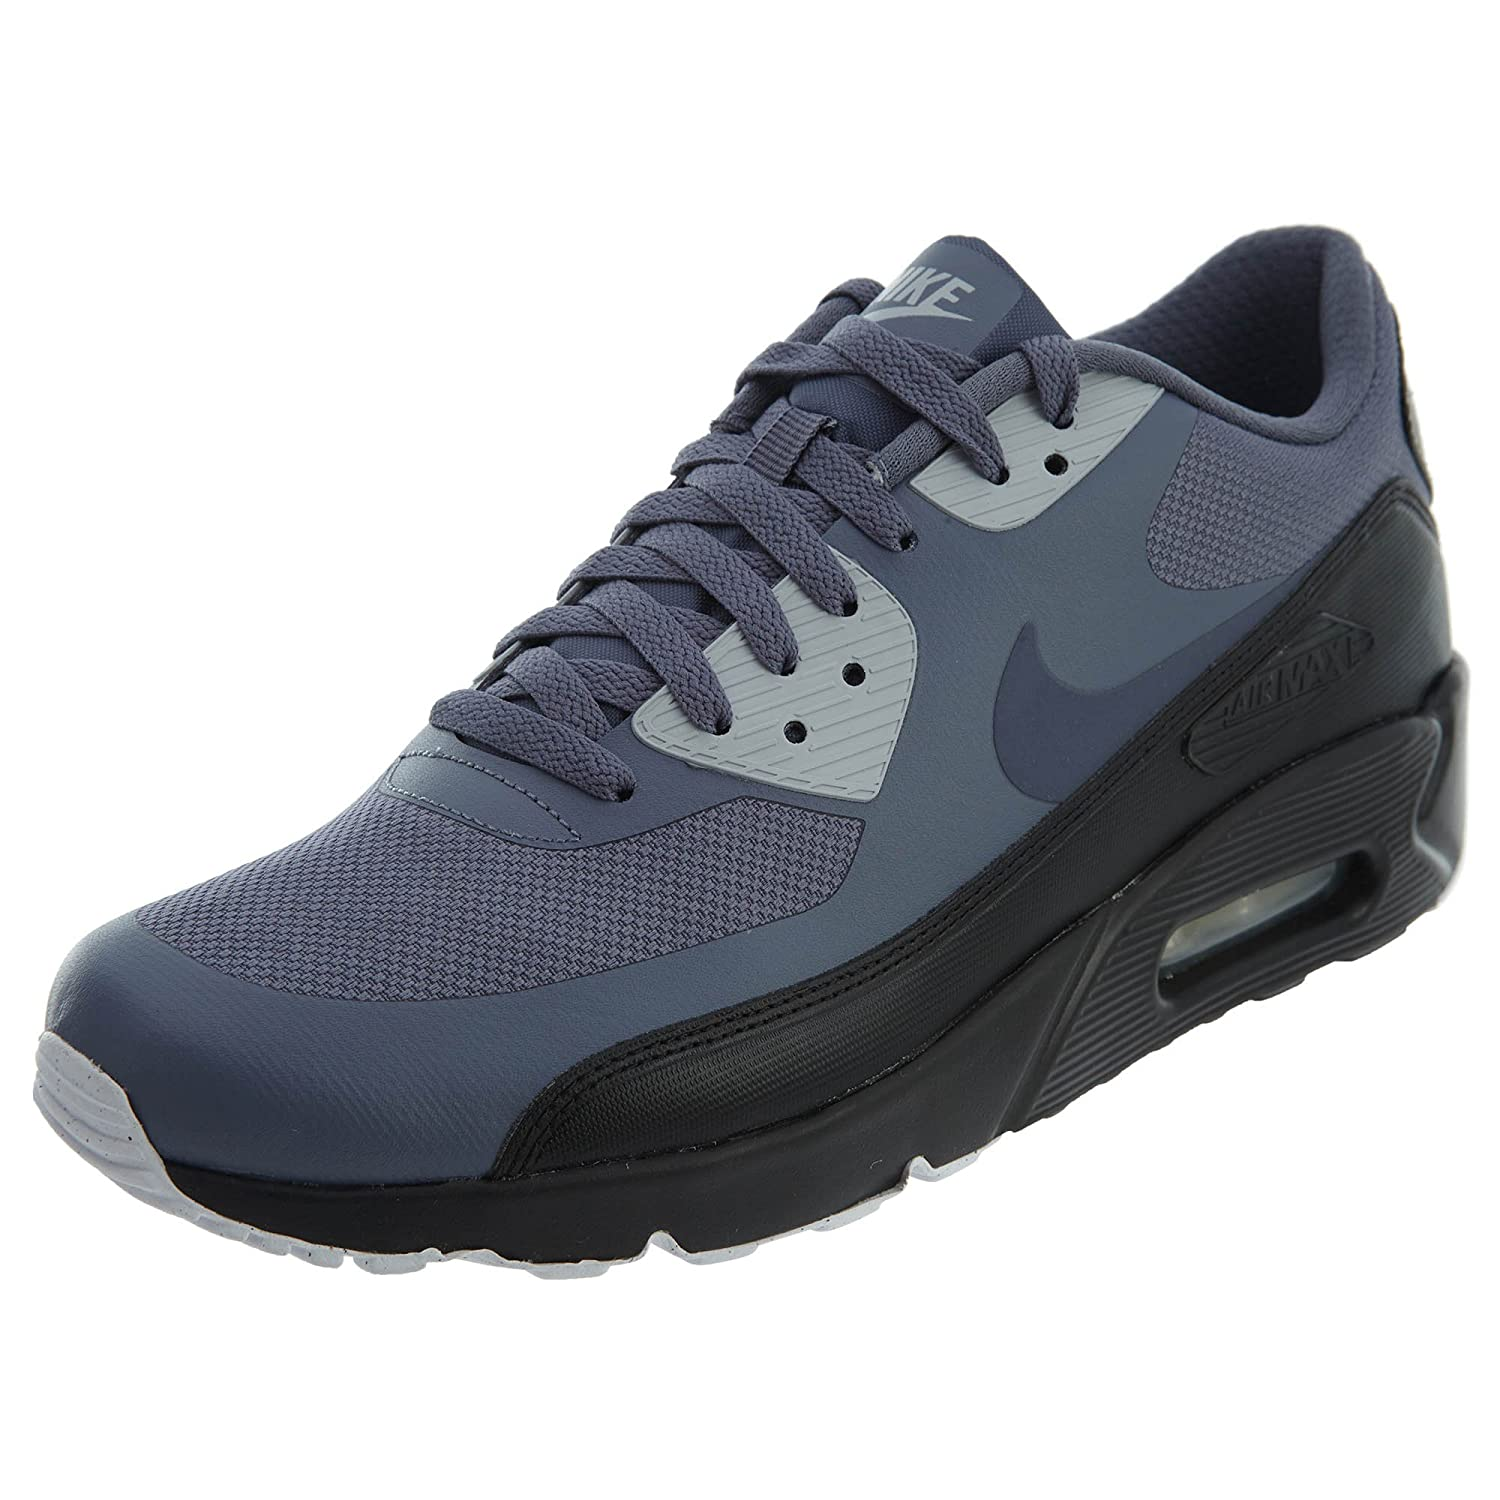 NIKE Men's Air Max Ultra 2.0 Essential Running Shoe B0762HB34Y 10 D(M) US|Light Carbon/Light Carbon